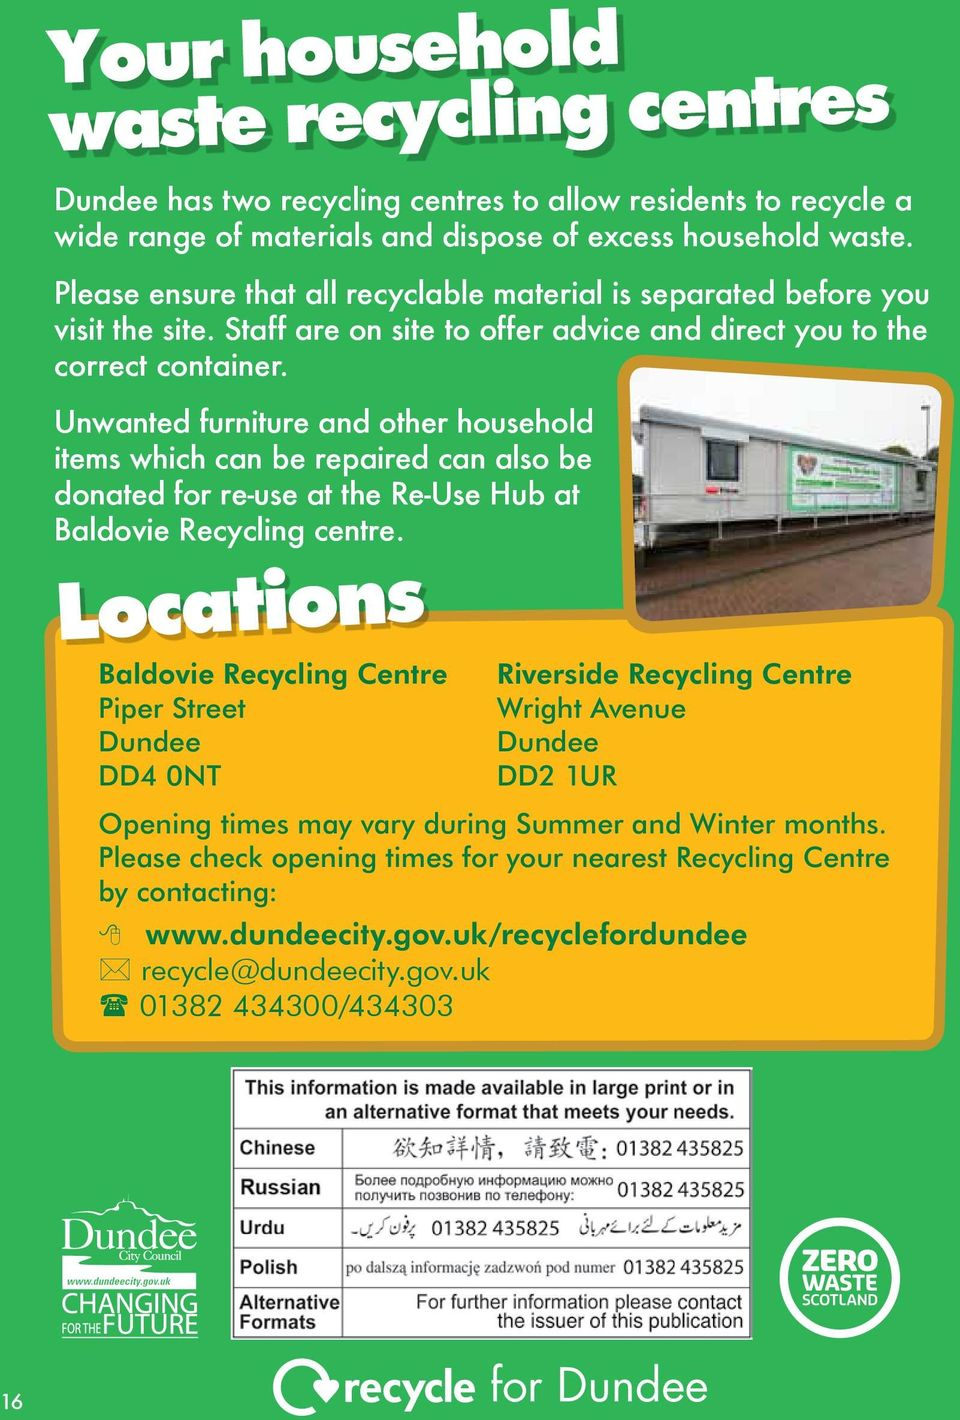 Unwanted furniture and other household items which can be repaired can also be donated for re-use at the Re-Use Hub at Baldovie Recycling centre.